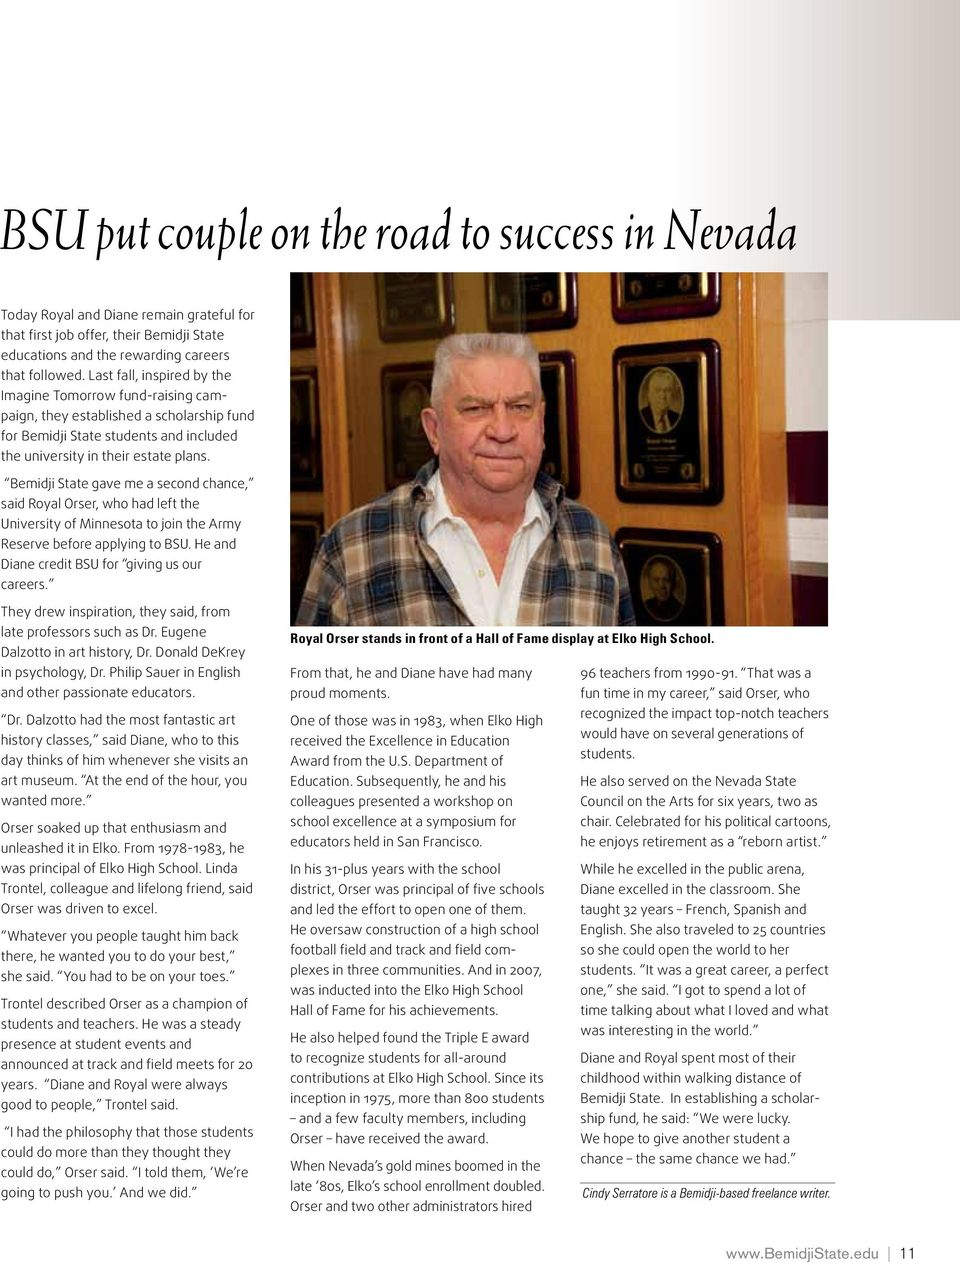 Bemidji State gave me a second chance, said Royal Orser, who had left the University of Minnesota to join the Army Reserve before applying to BSU. He and Diane credit BSU for giving us our careers.